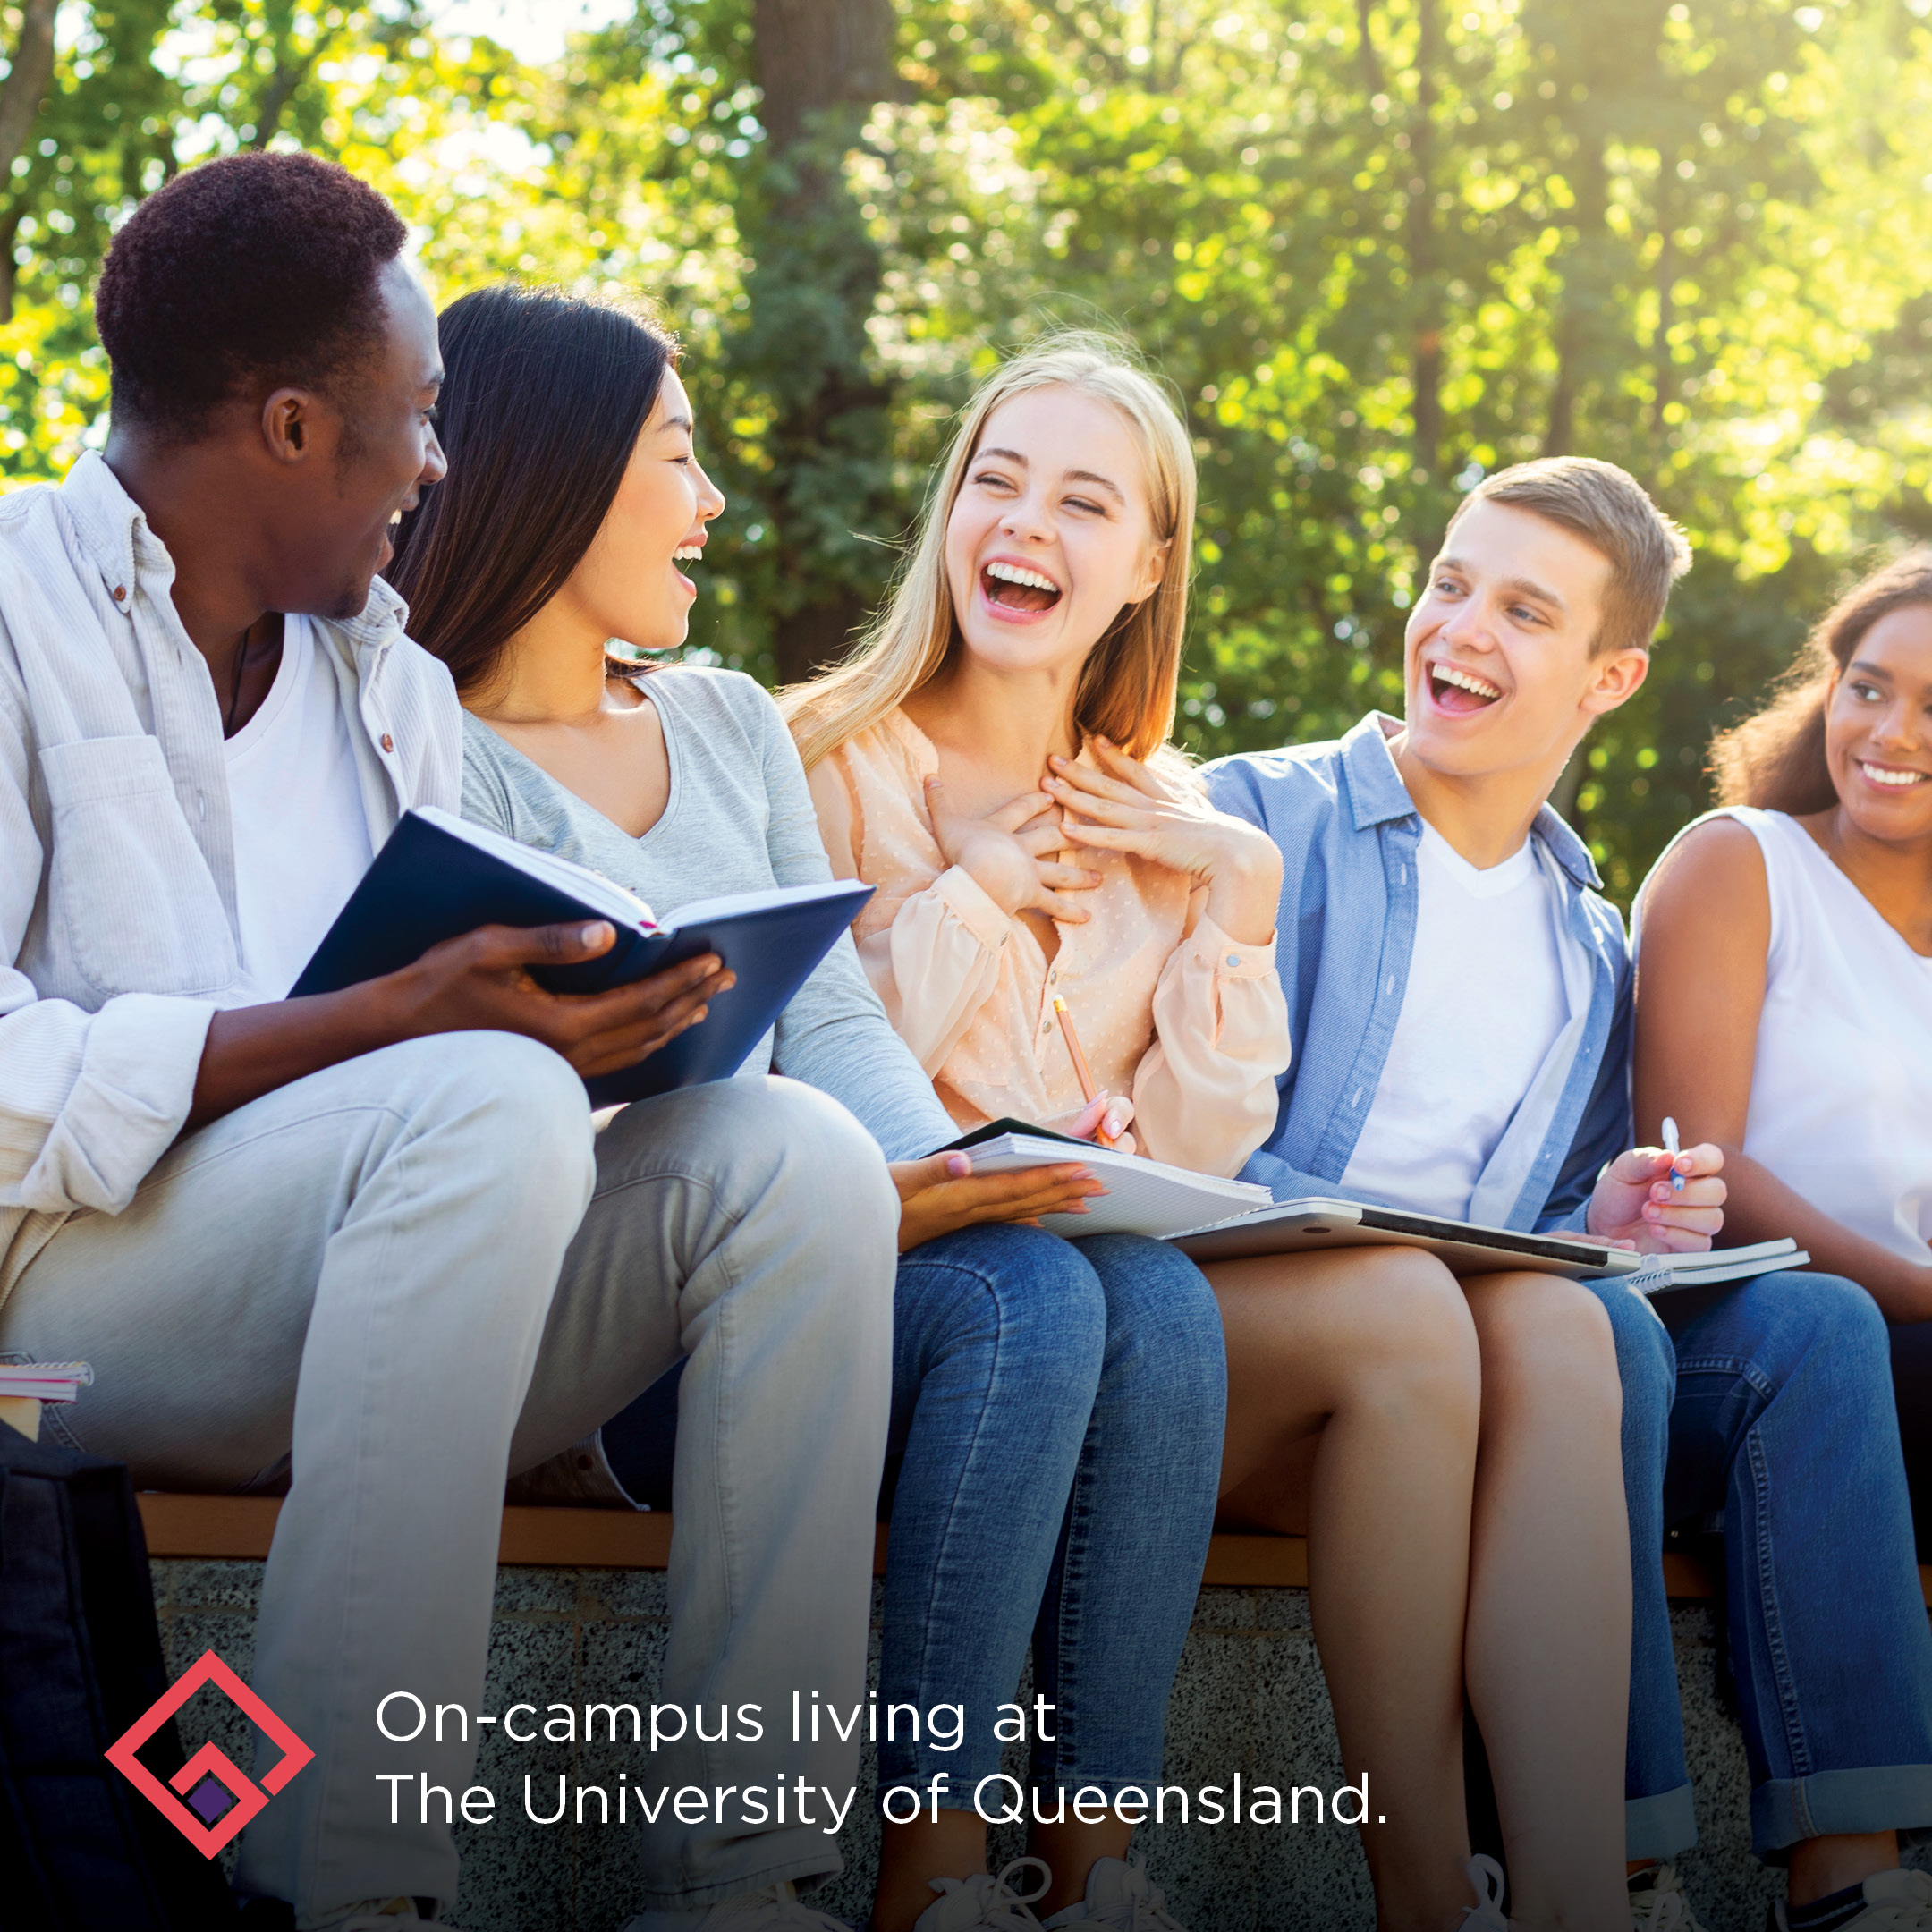 On-campus living for all students